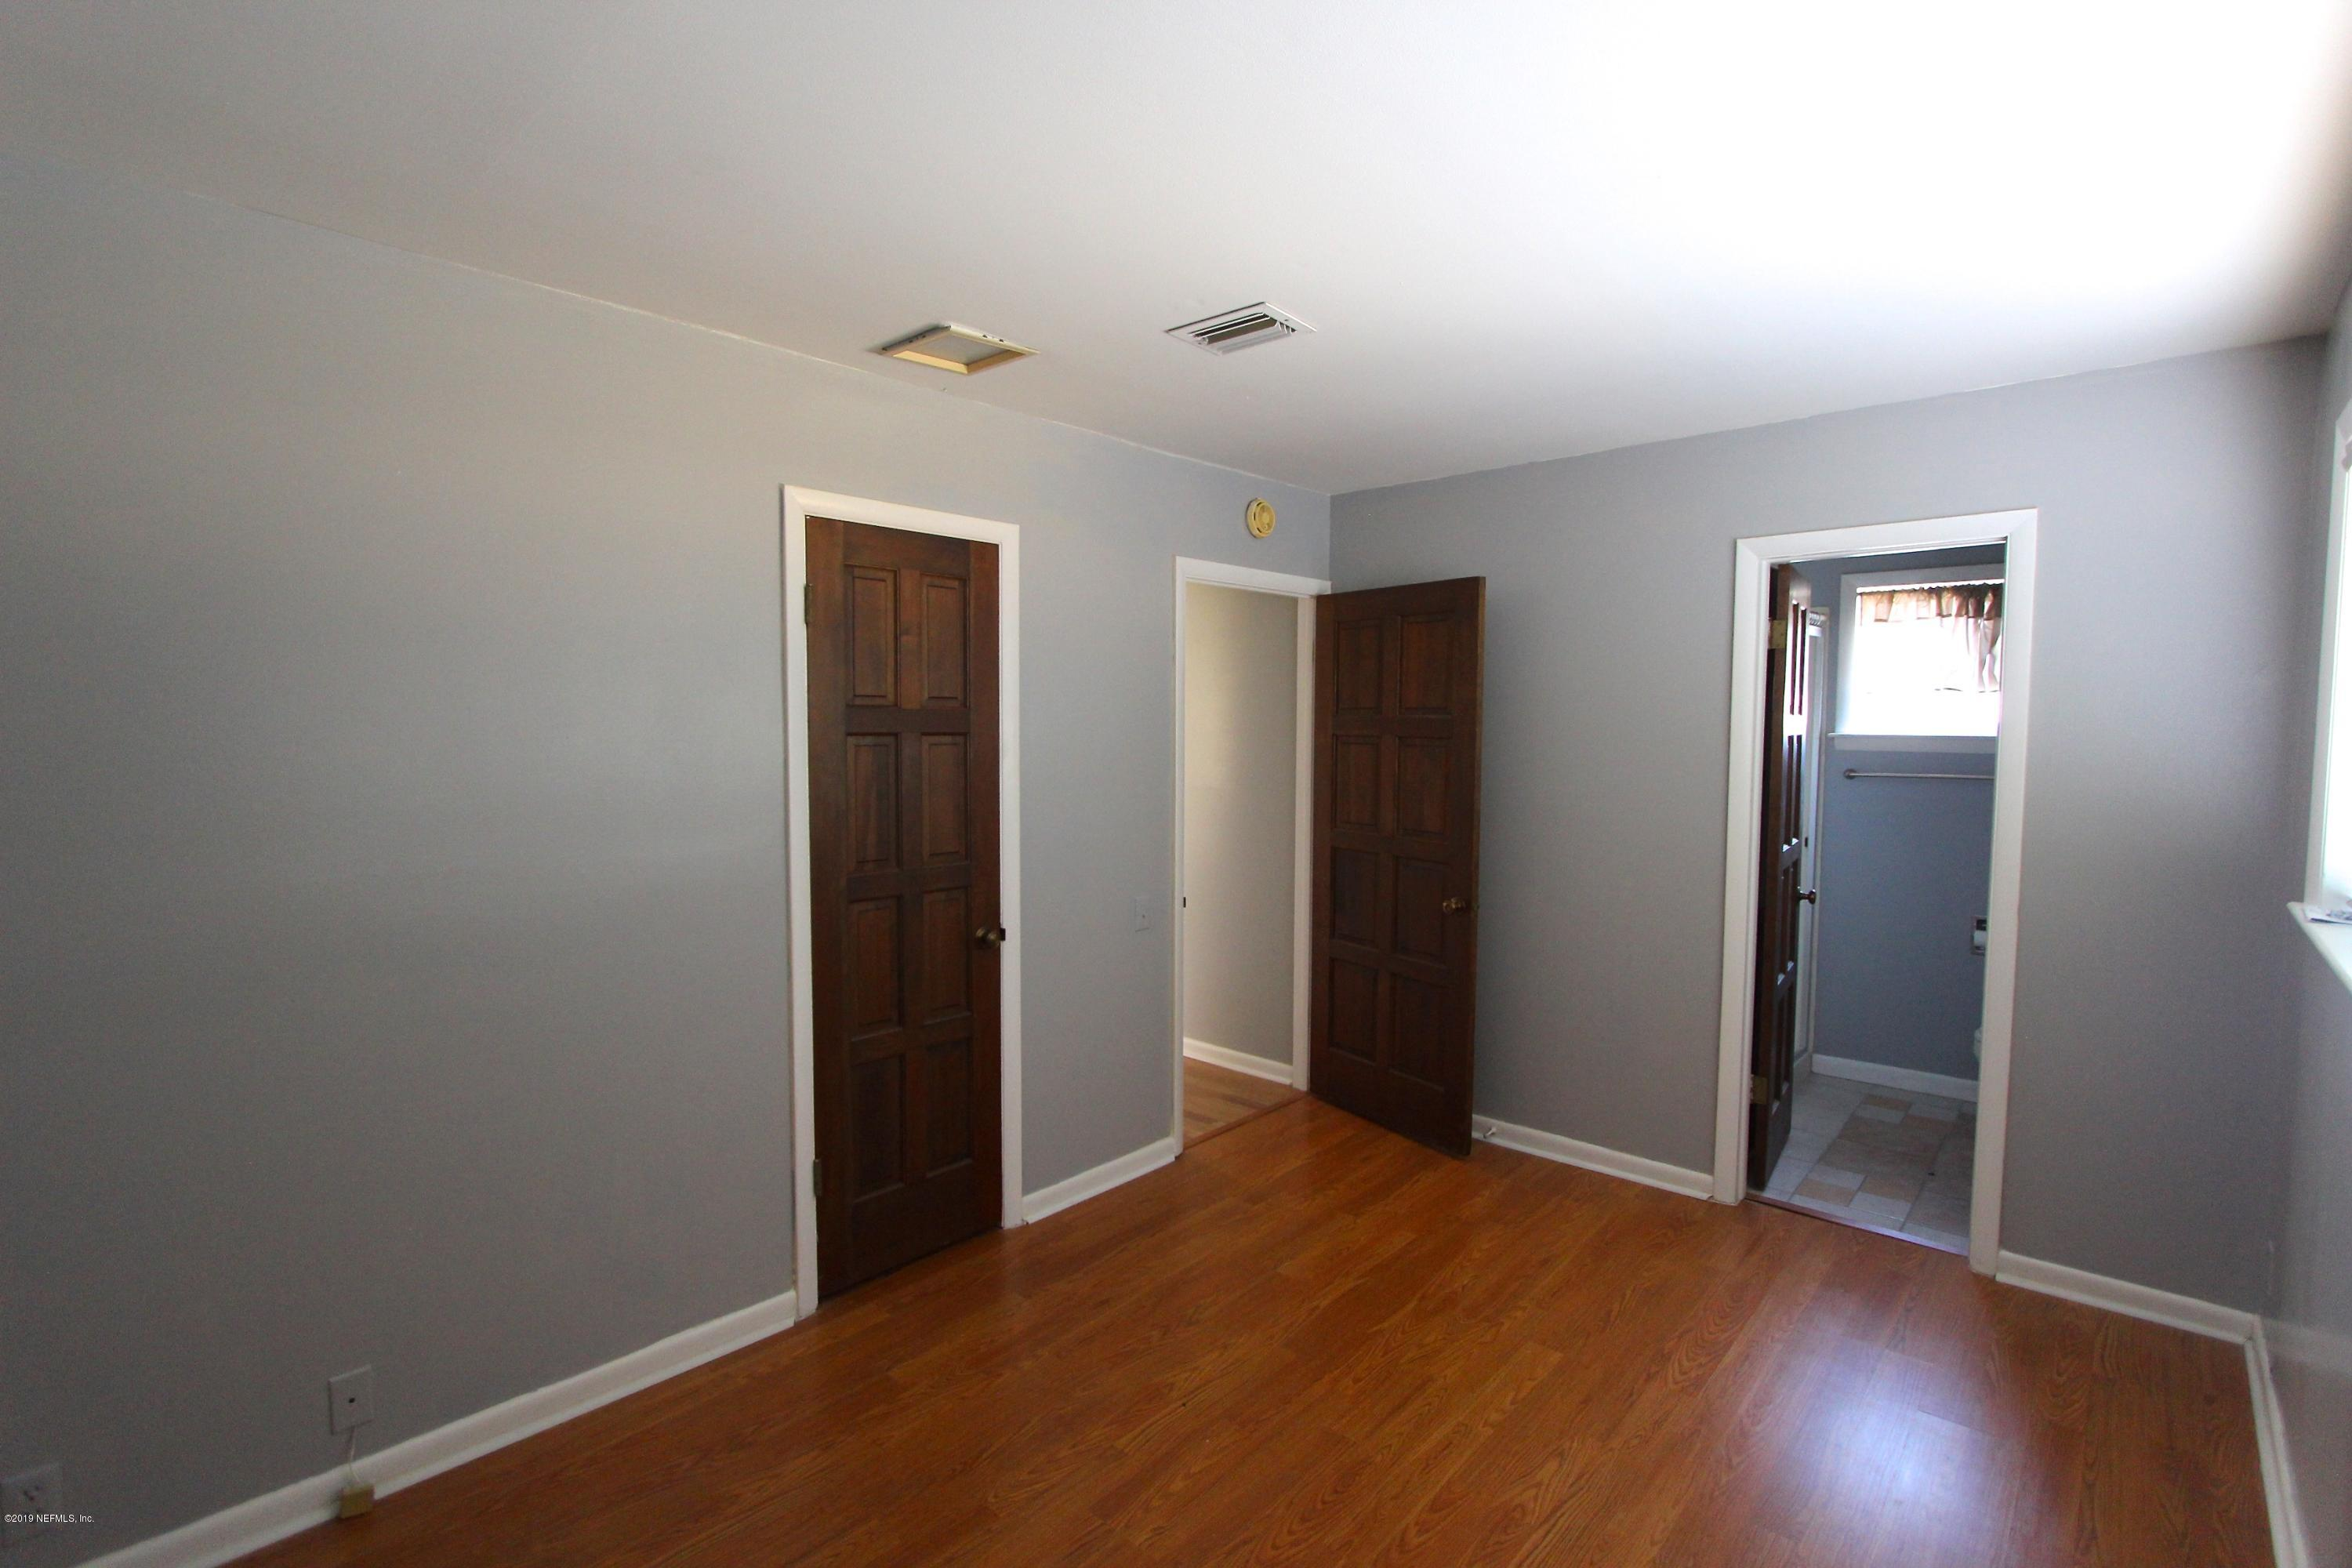 18 ST AUGUSTINE, ST AUGUSTINE, FLORIDA 32080, 2 Bedrooms Bedrooms, ,2 BathroomsBathrooms,Residential - condos/townhomes,For sale,ST AUGUSTINE,974202